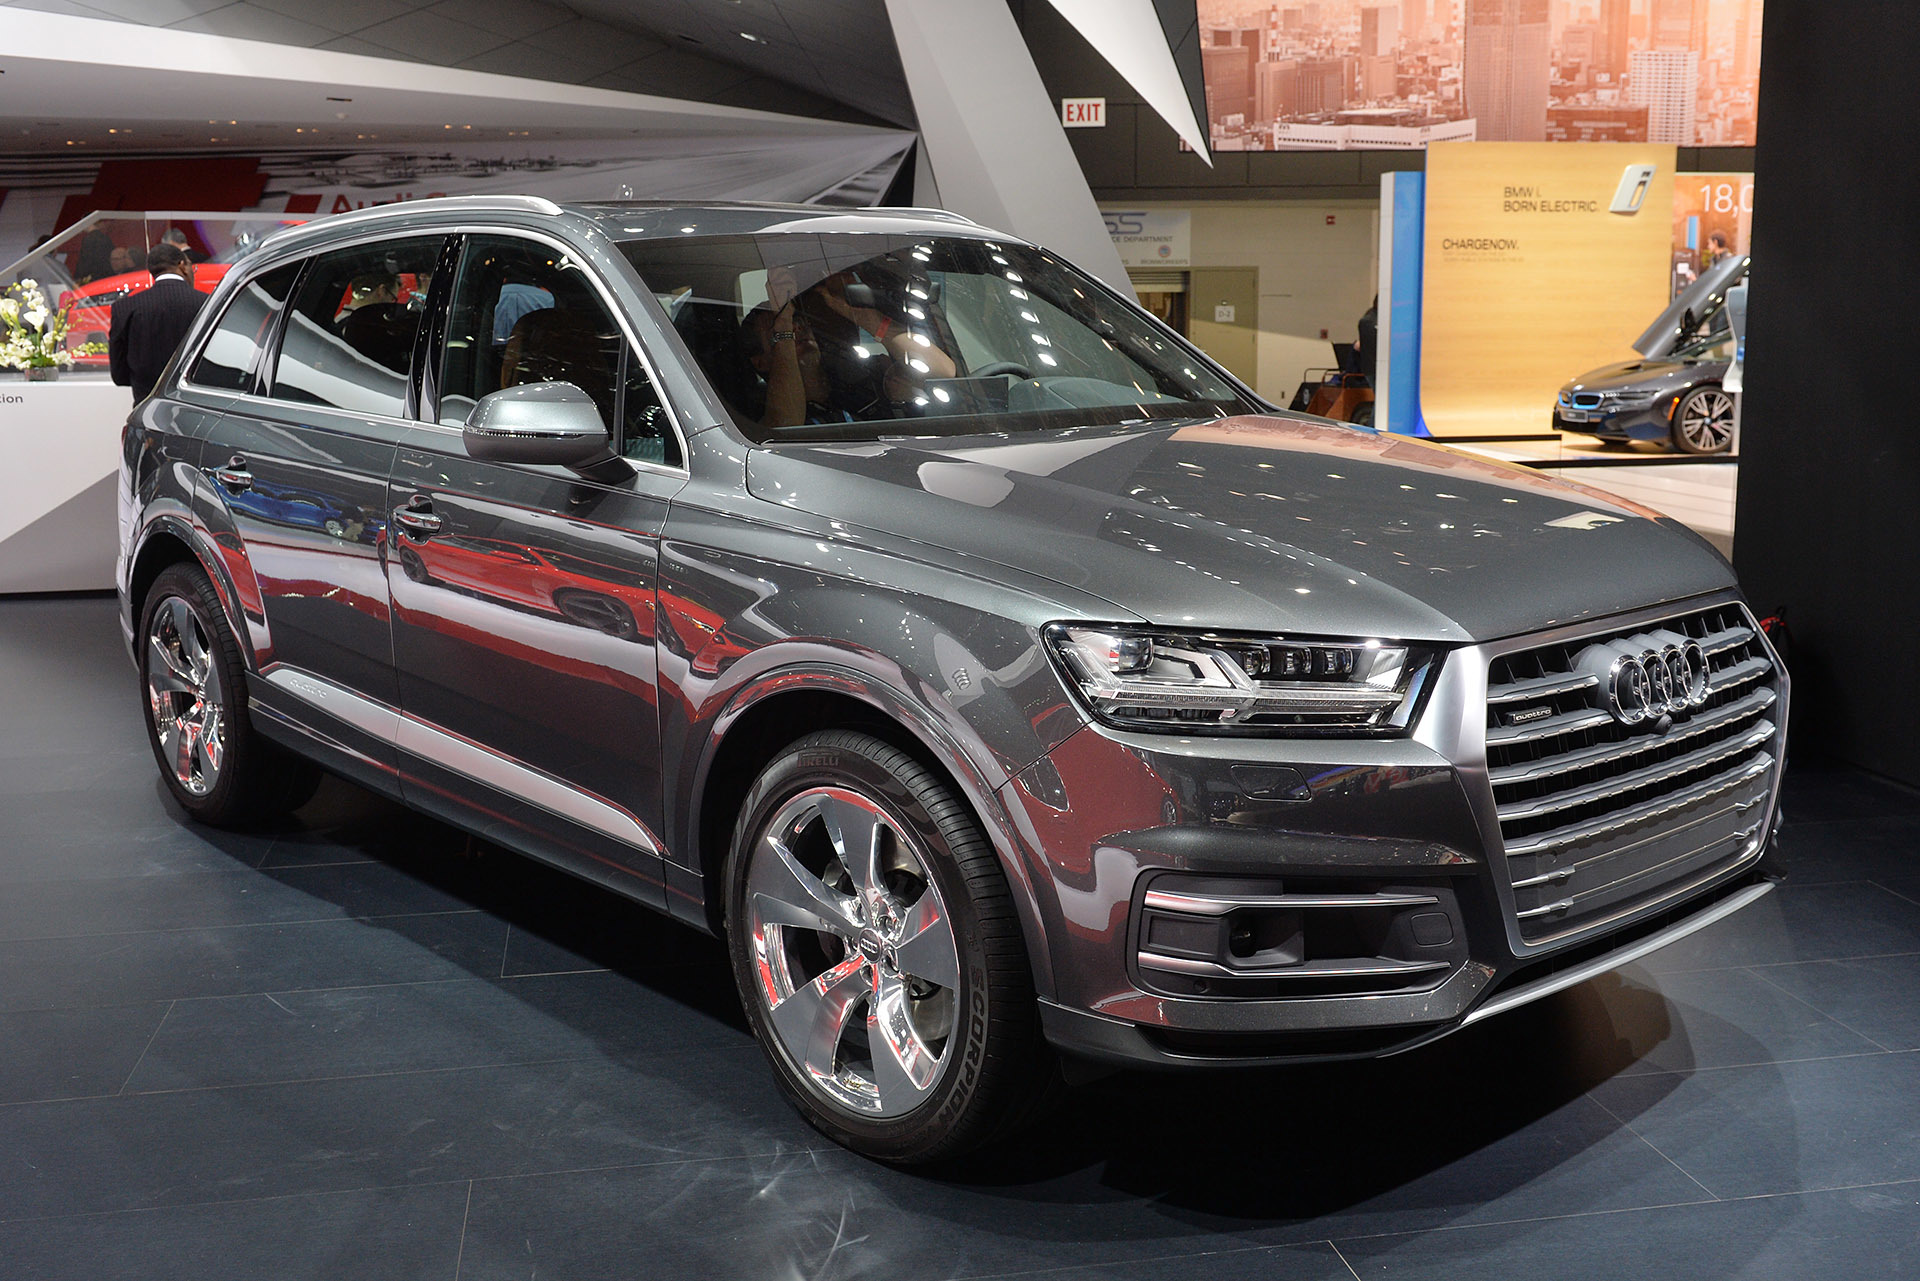 2016 Audi Q7 Unveiled at the 2015 Detroit Auto Show - PakWheels Blog